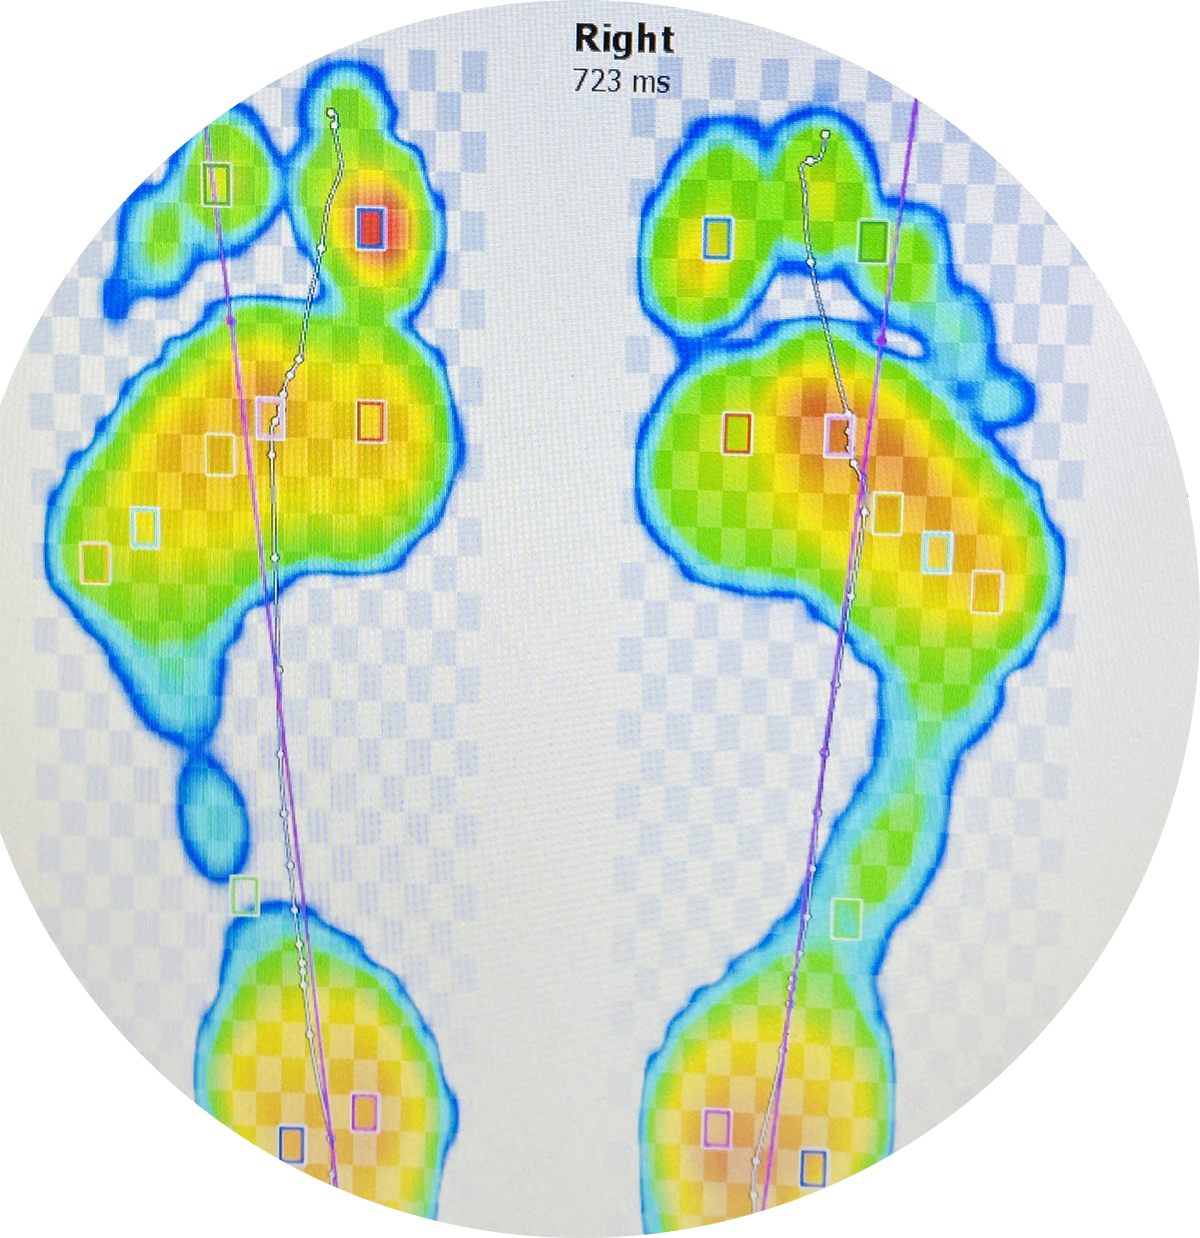 Orthotics RS Foot Scan - SO Podiatry